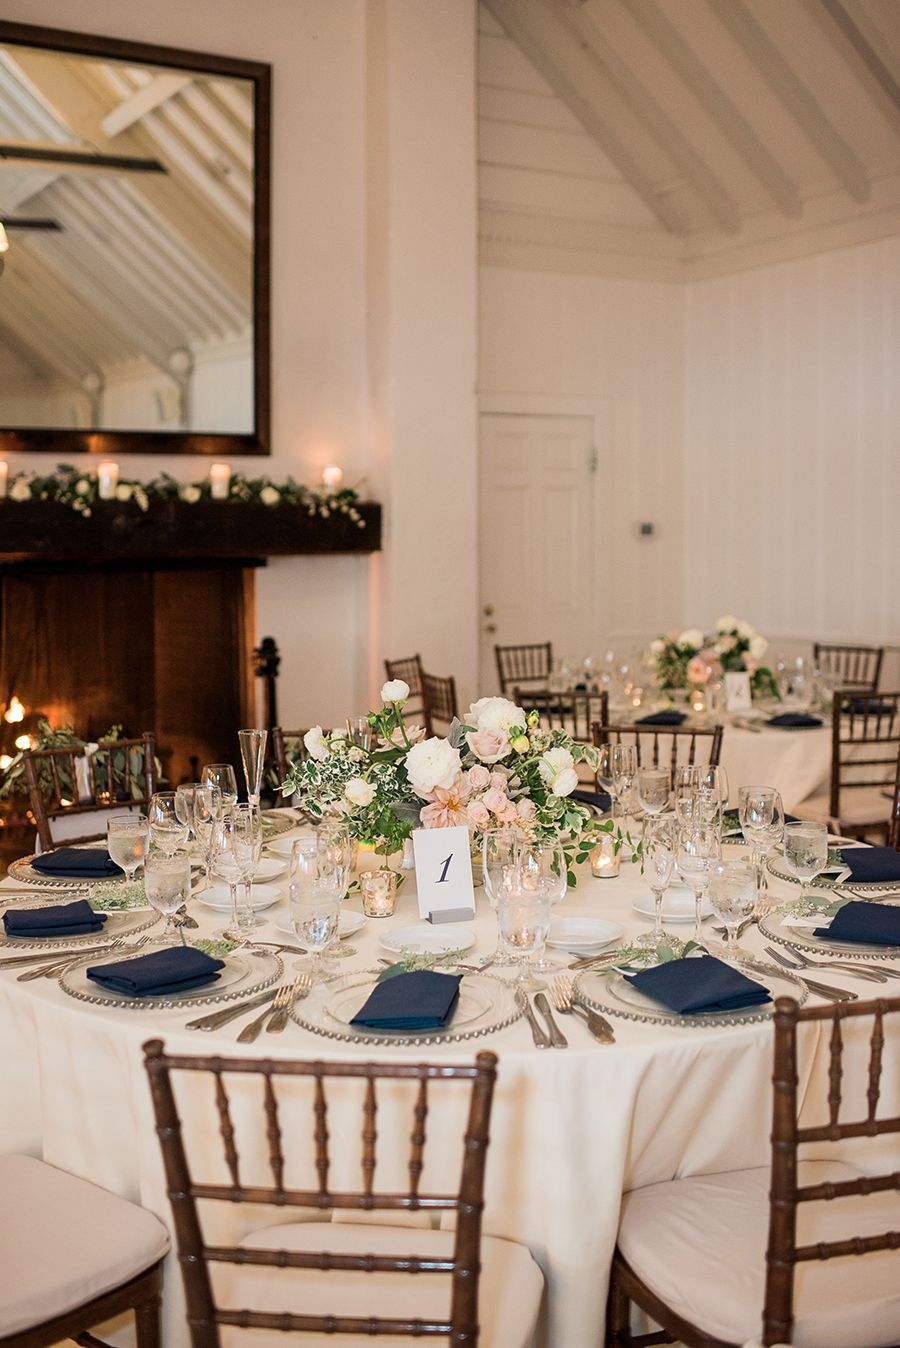 This Is How a Romantic Nautical Wedding Is Done  wedding DECOR